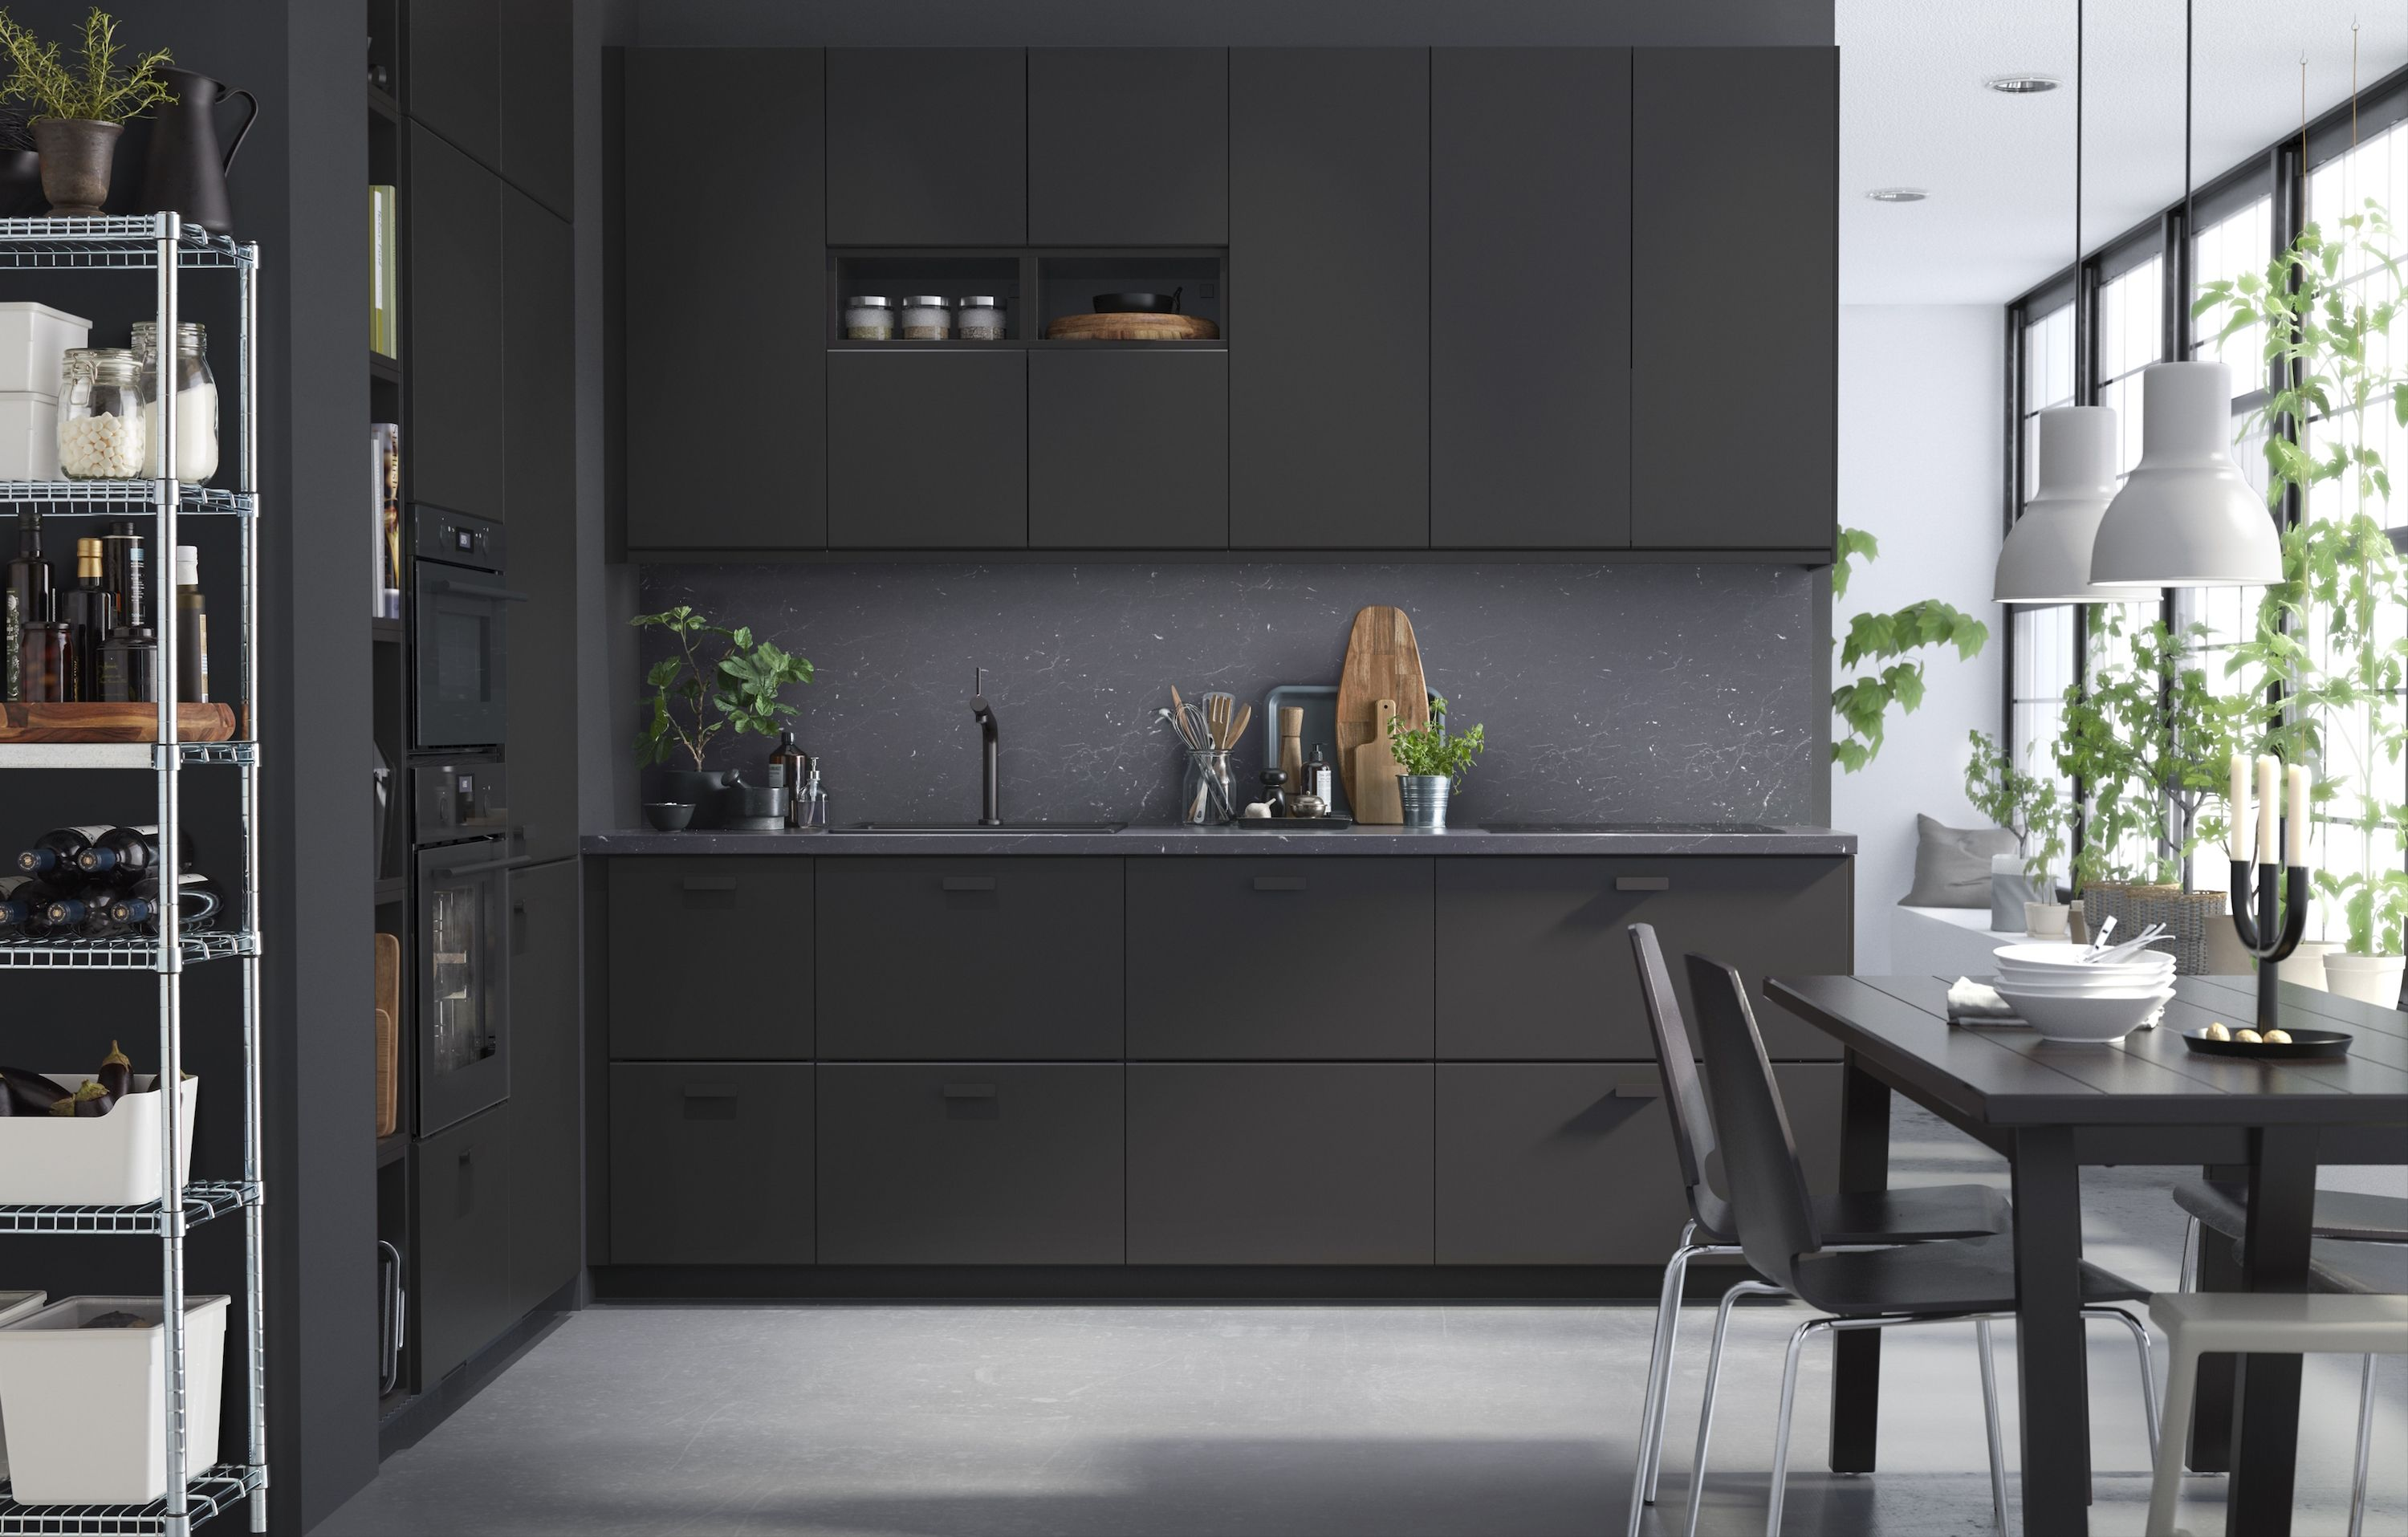 ikea kitchen cabinets trash bins made from recycled materials black